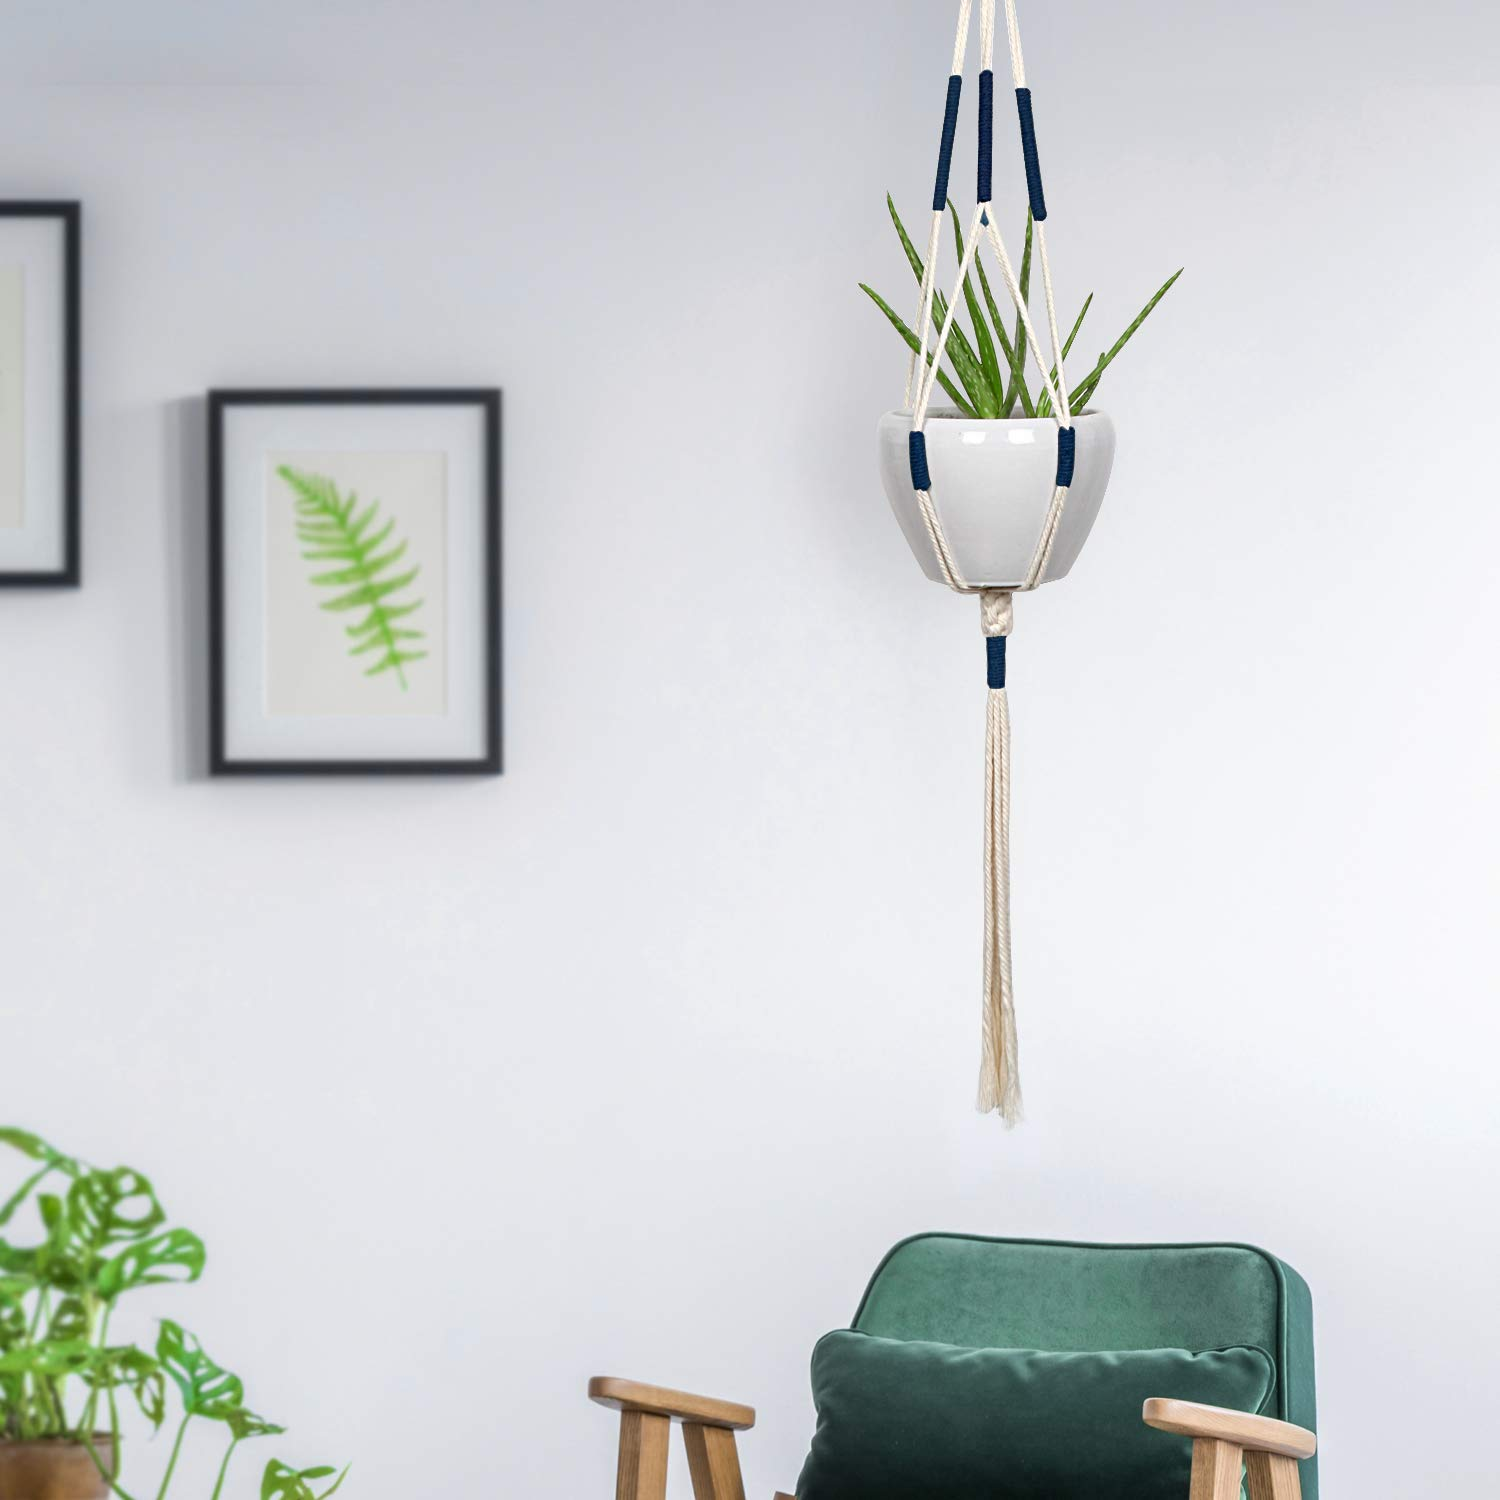 Macrame Plant Hangers - Hanging Planter Indoor Outdoor - Cotton Plant Basket Holder with Blue in Details 41 Inch, Bohemian Decor